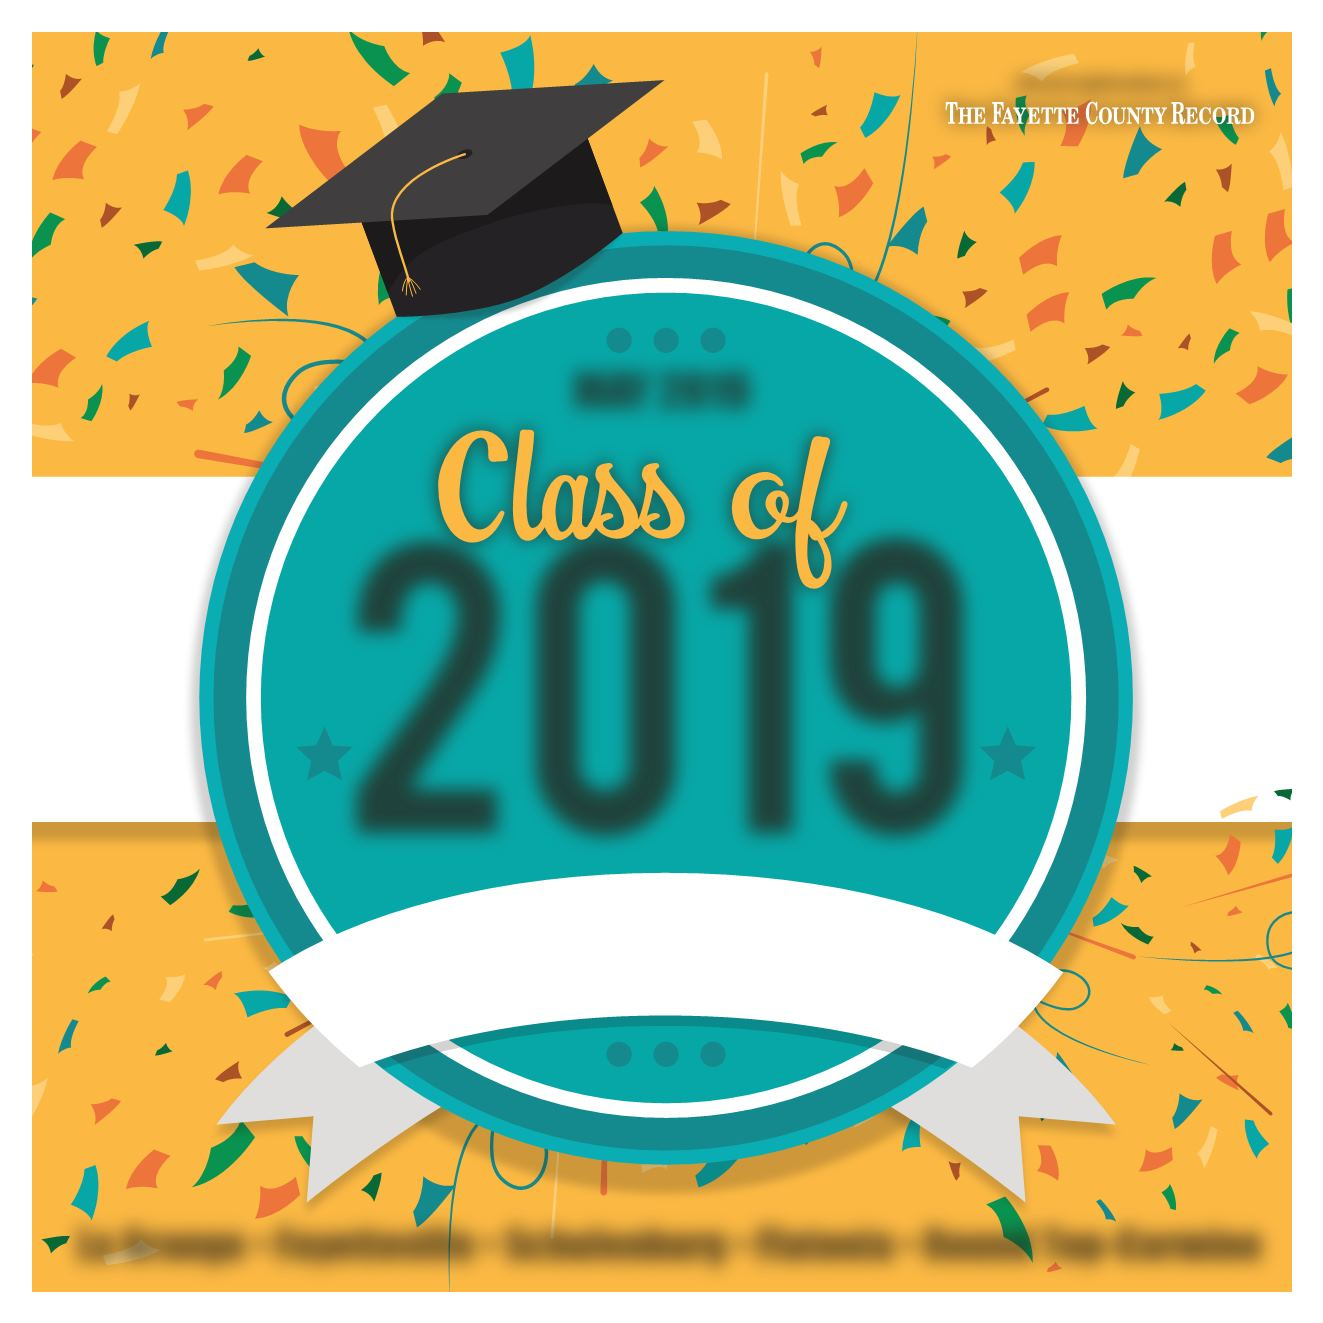 Class of 2019 clipart green and yellow clip freeuse download Graduation, 2019 clip freeuse download